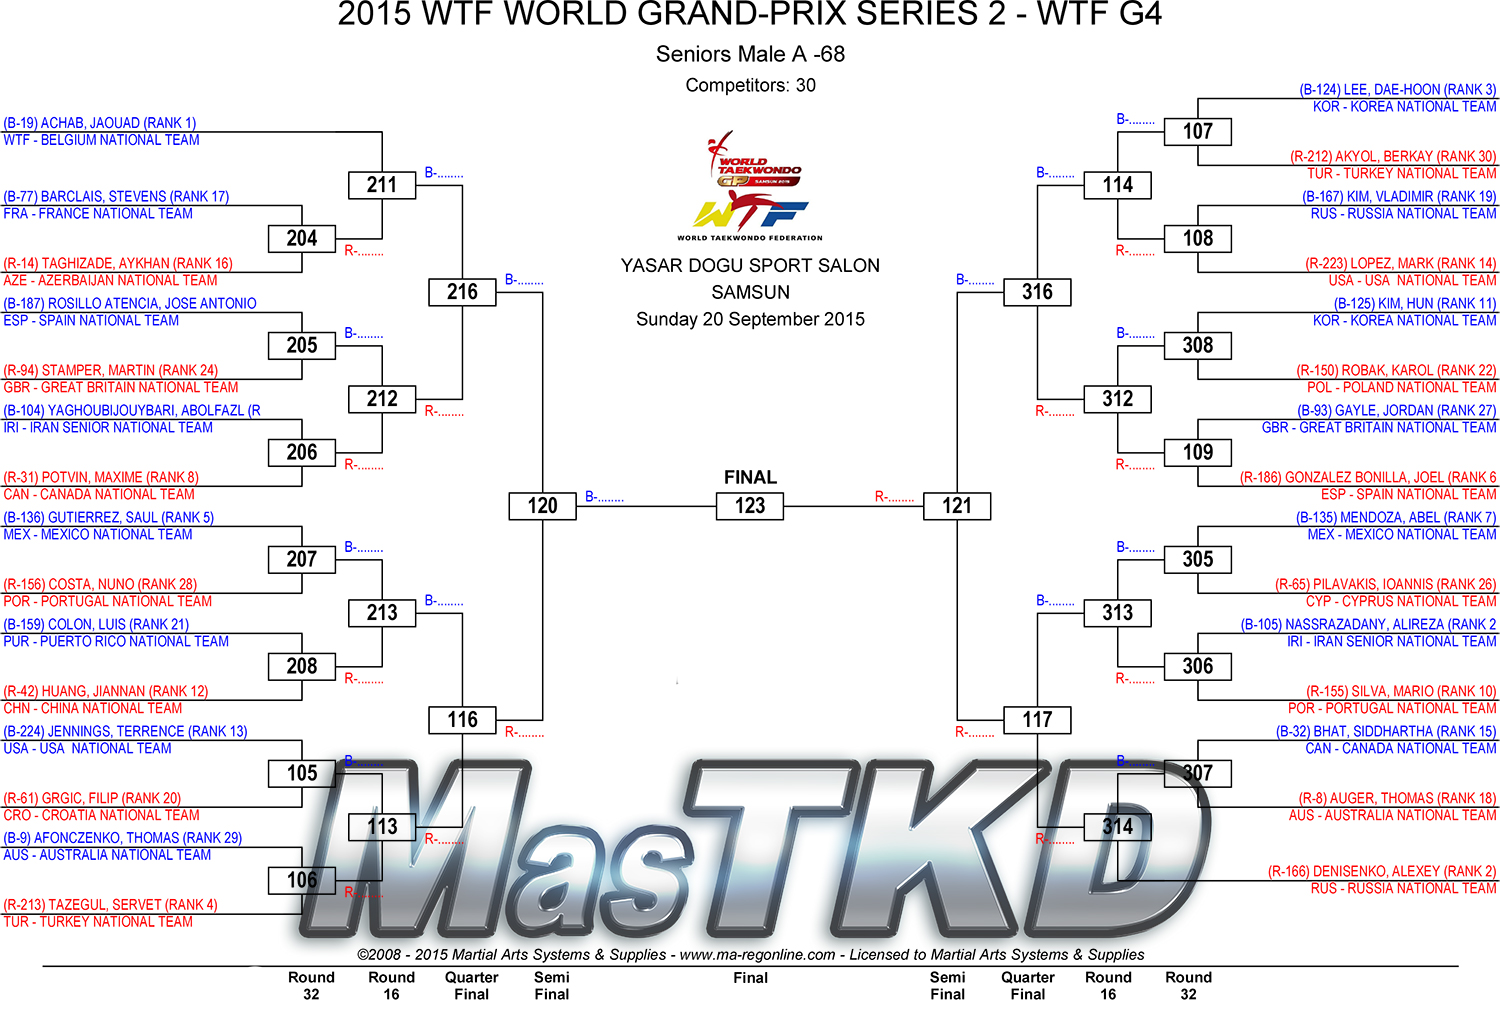 2015-WTF-WORLD-GRAND-PRIX-SERIES-2-DRAW-D3_M-68